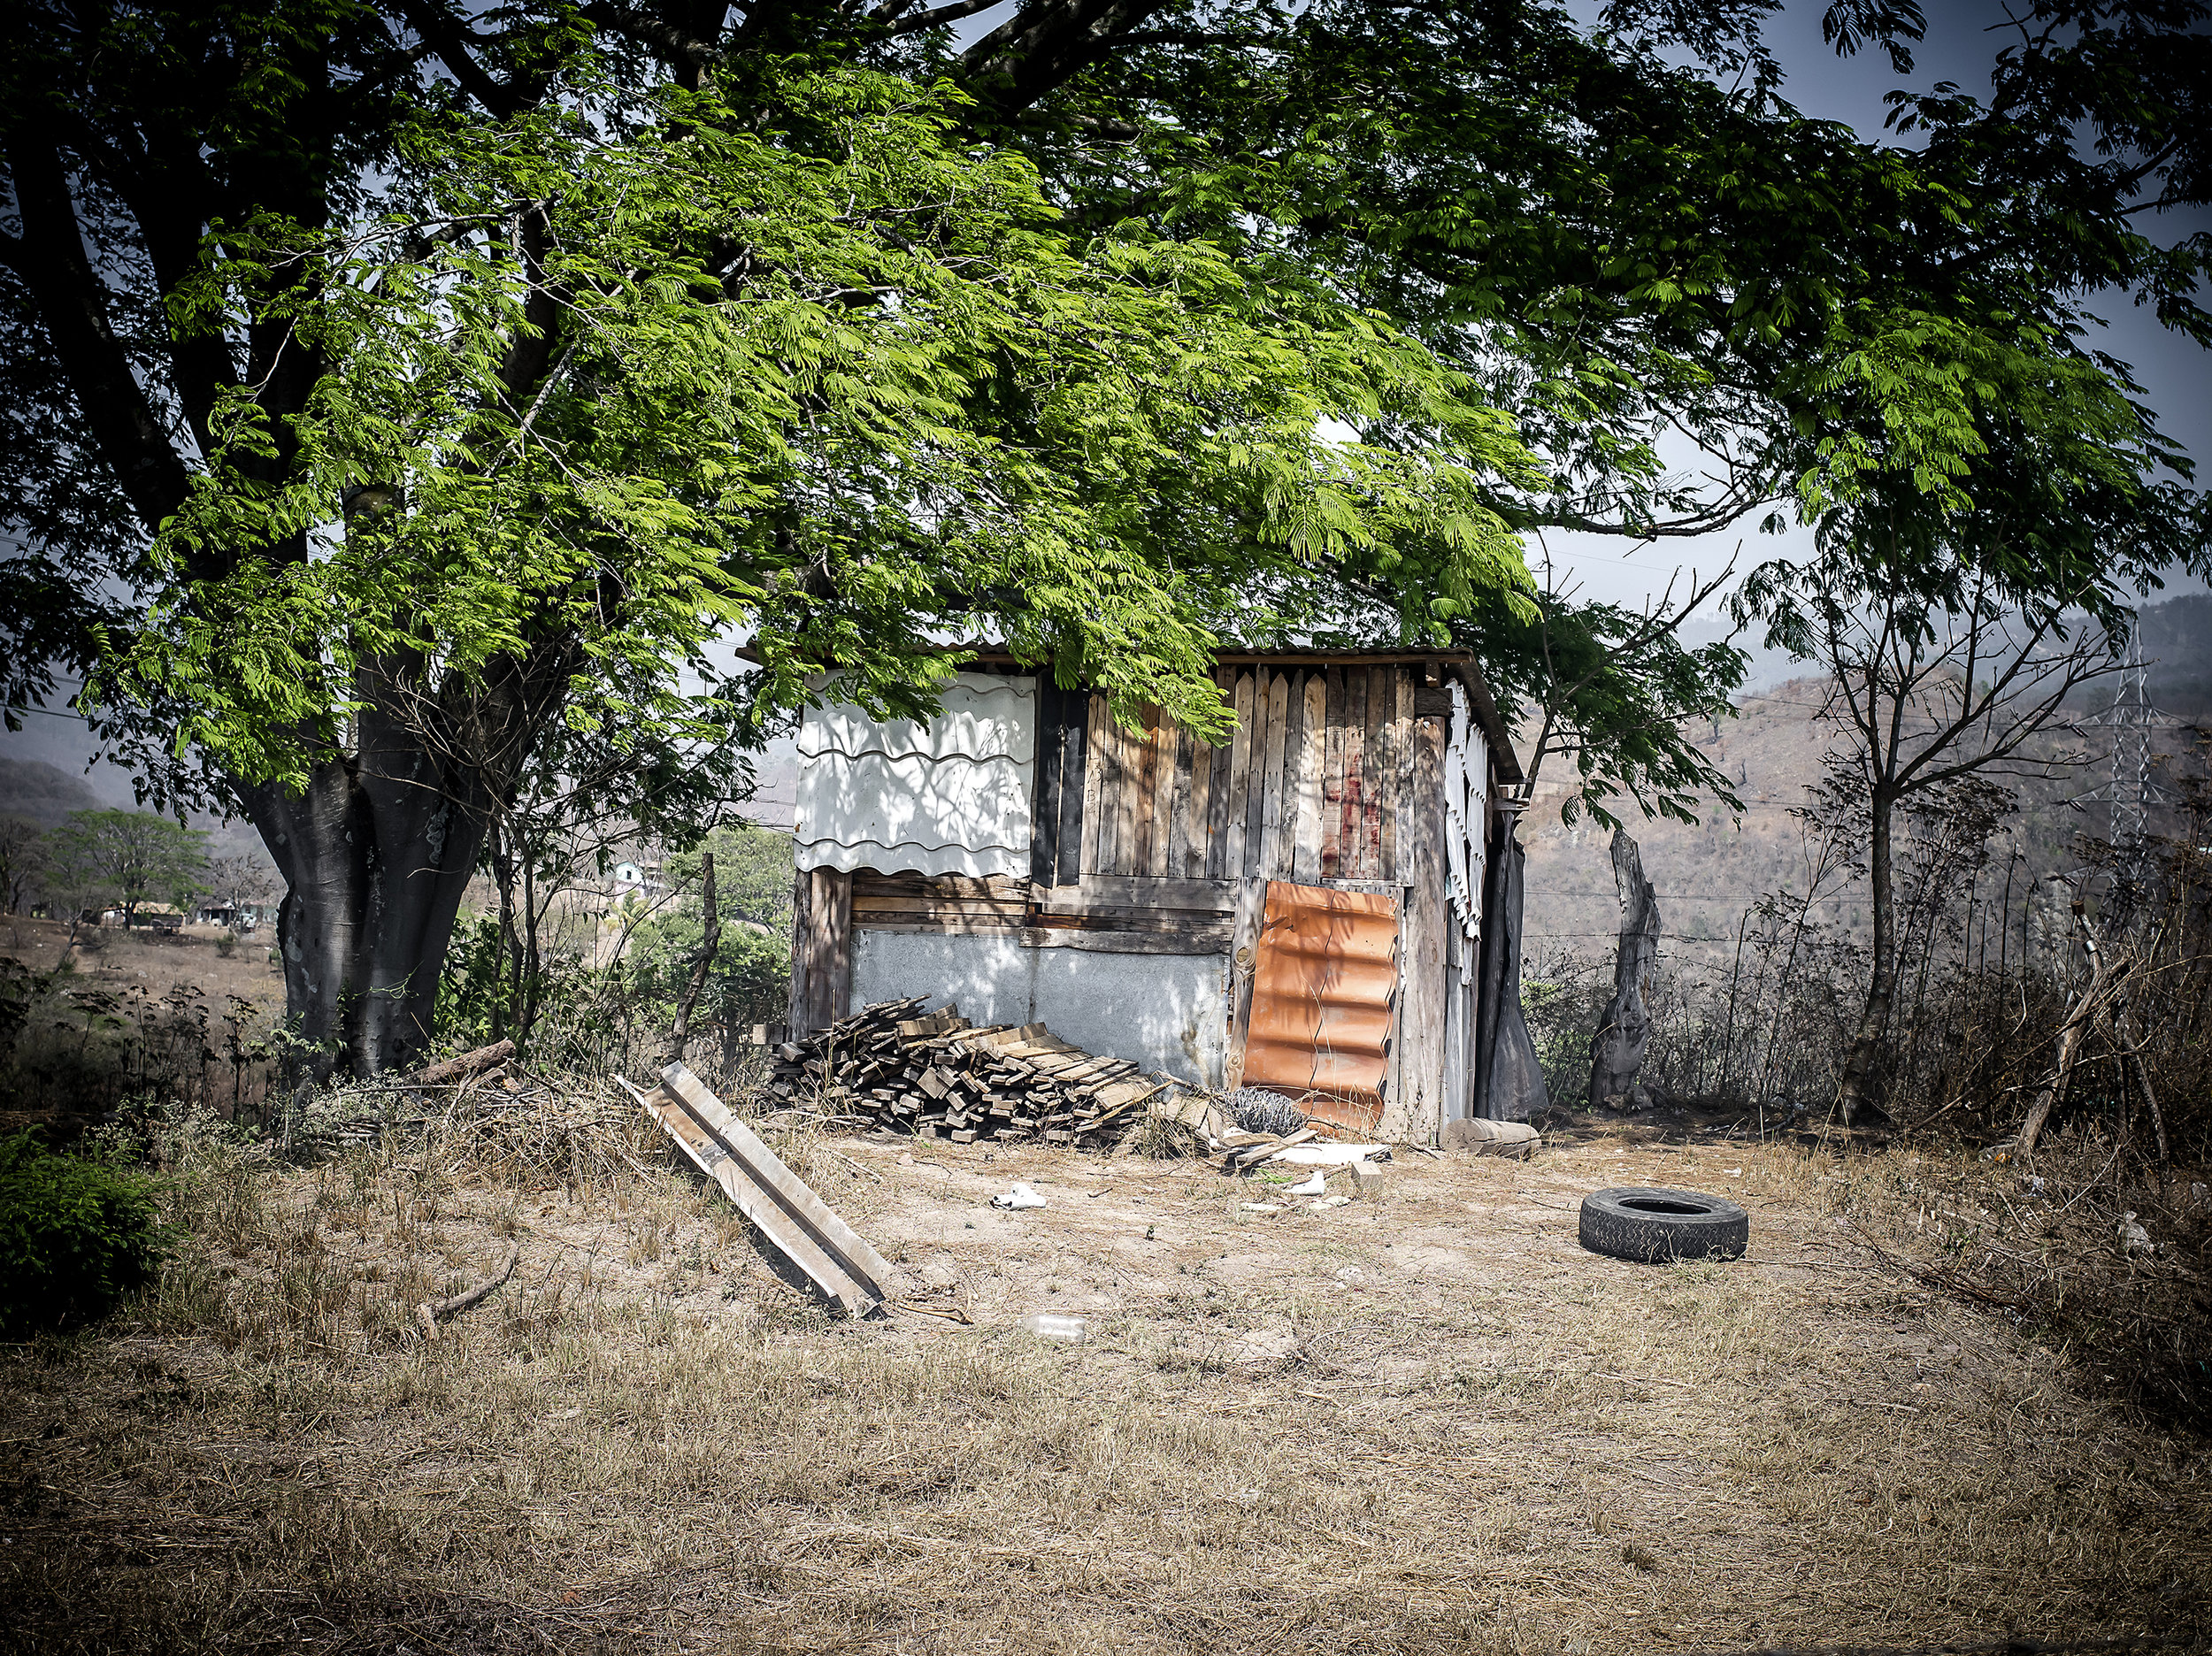 Many informal recyclers live in houses made of dump materials and wood. They do not have water or electricity. It is in a large plain with direct sun. This house luckily has shade from a tree.